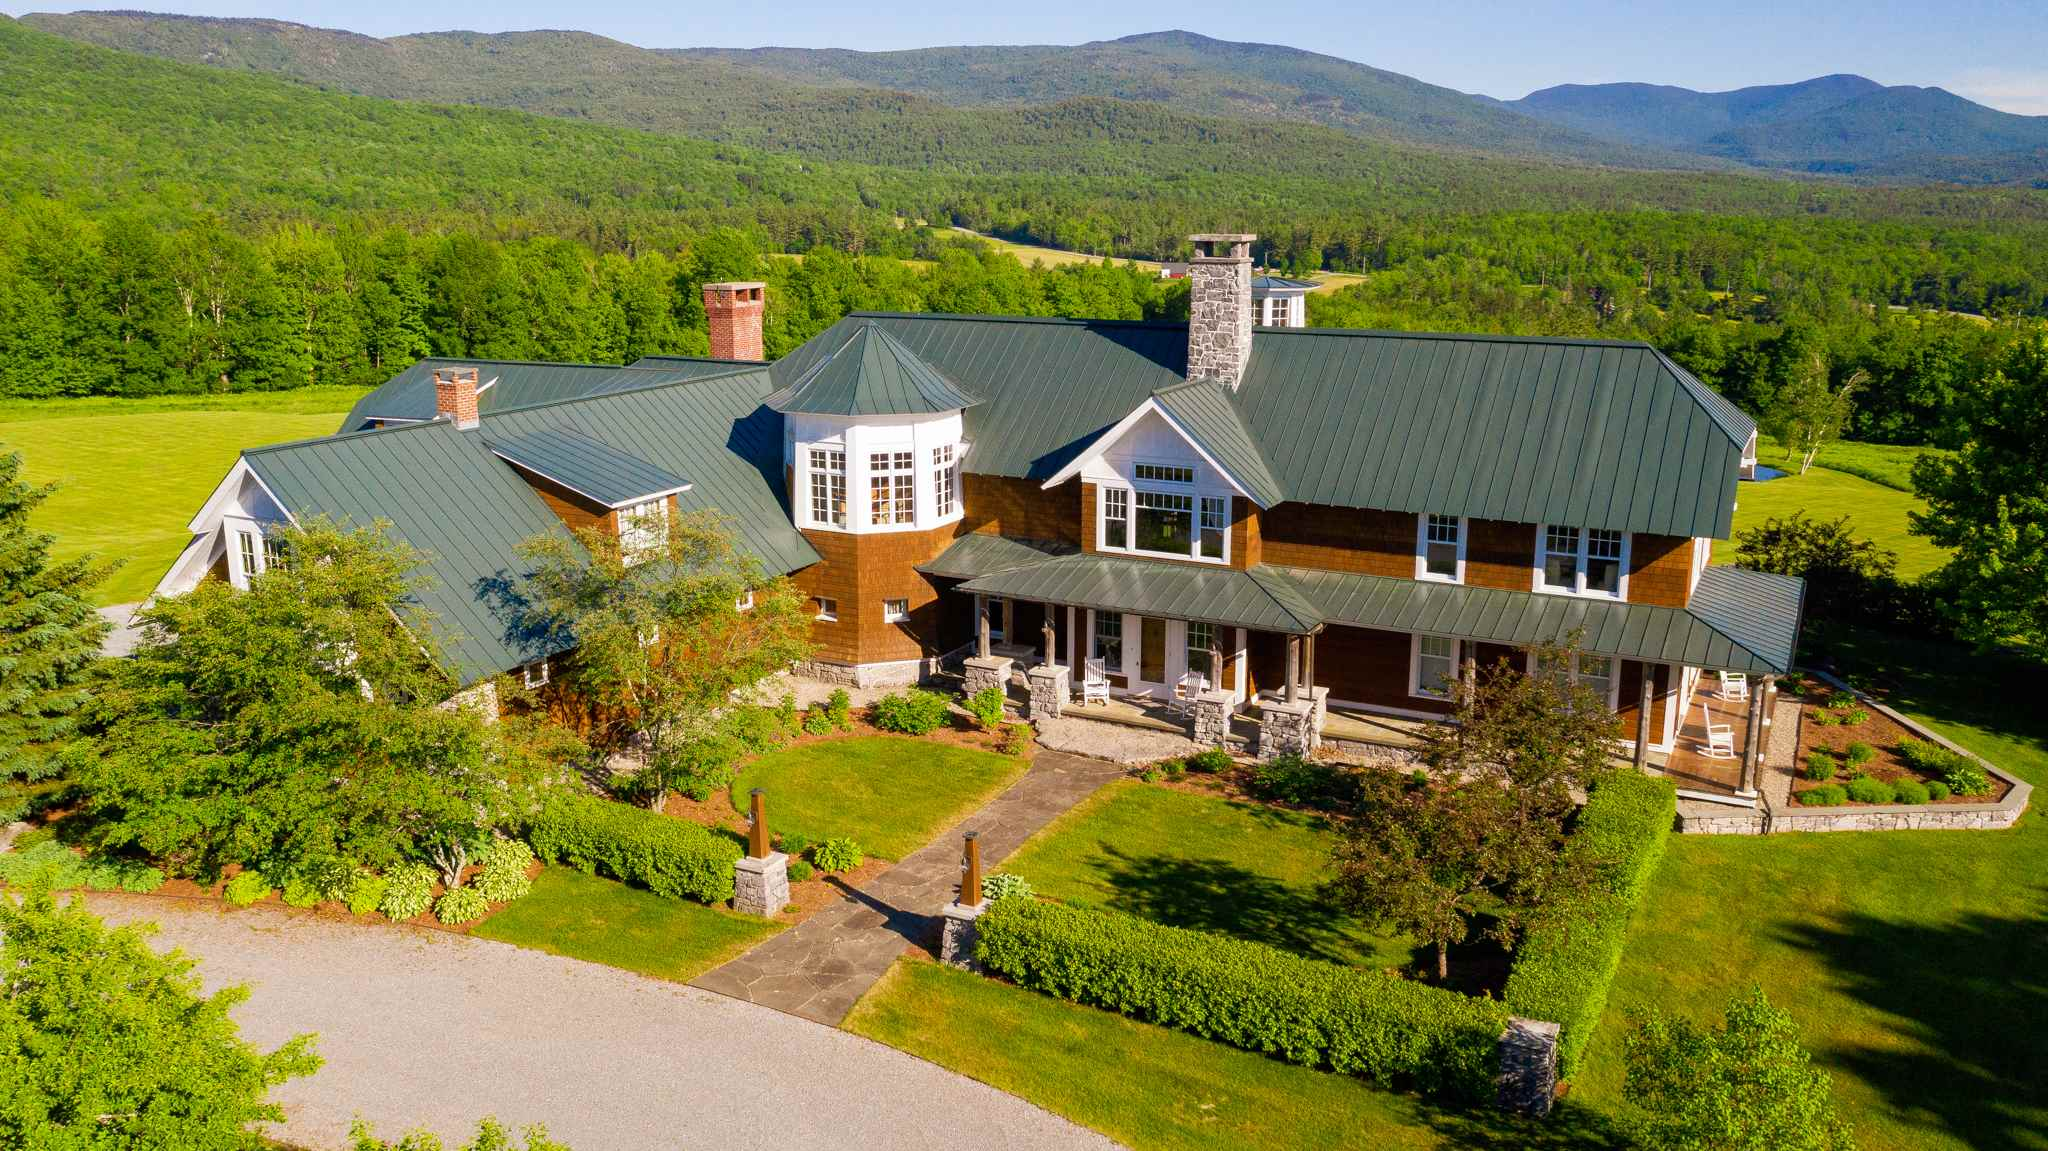 Photo of 430/432 Orchard Road North Lincoln VT 05443